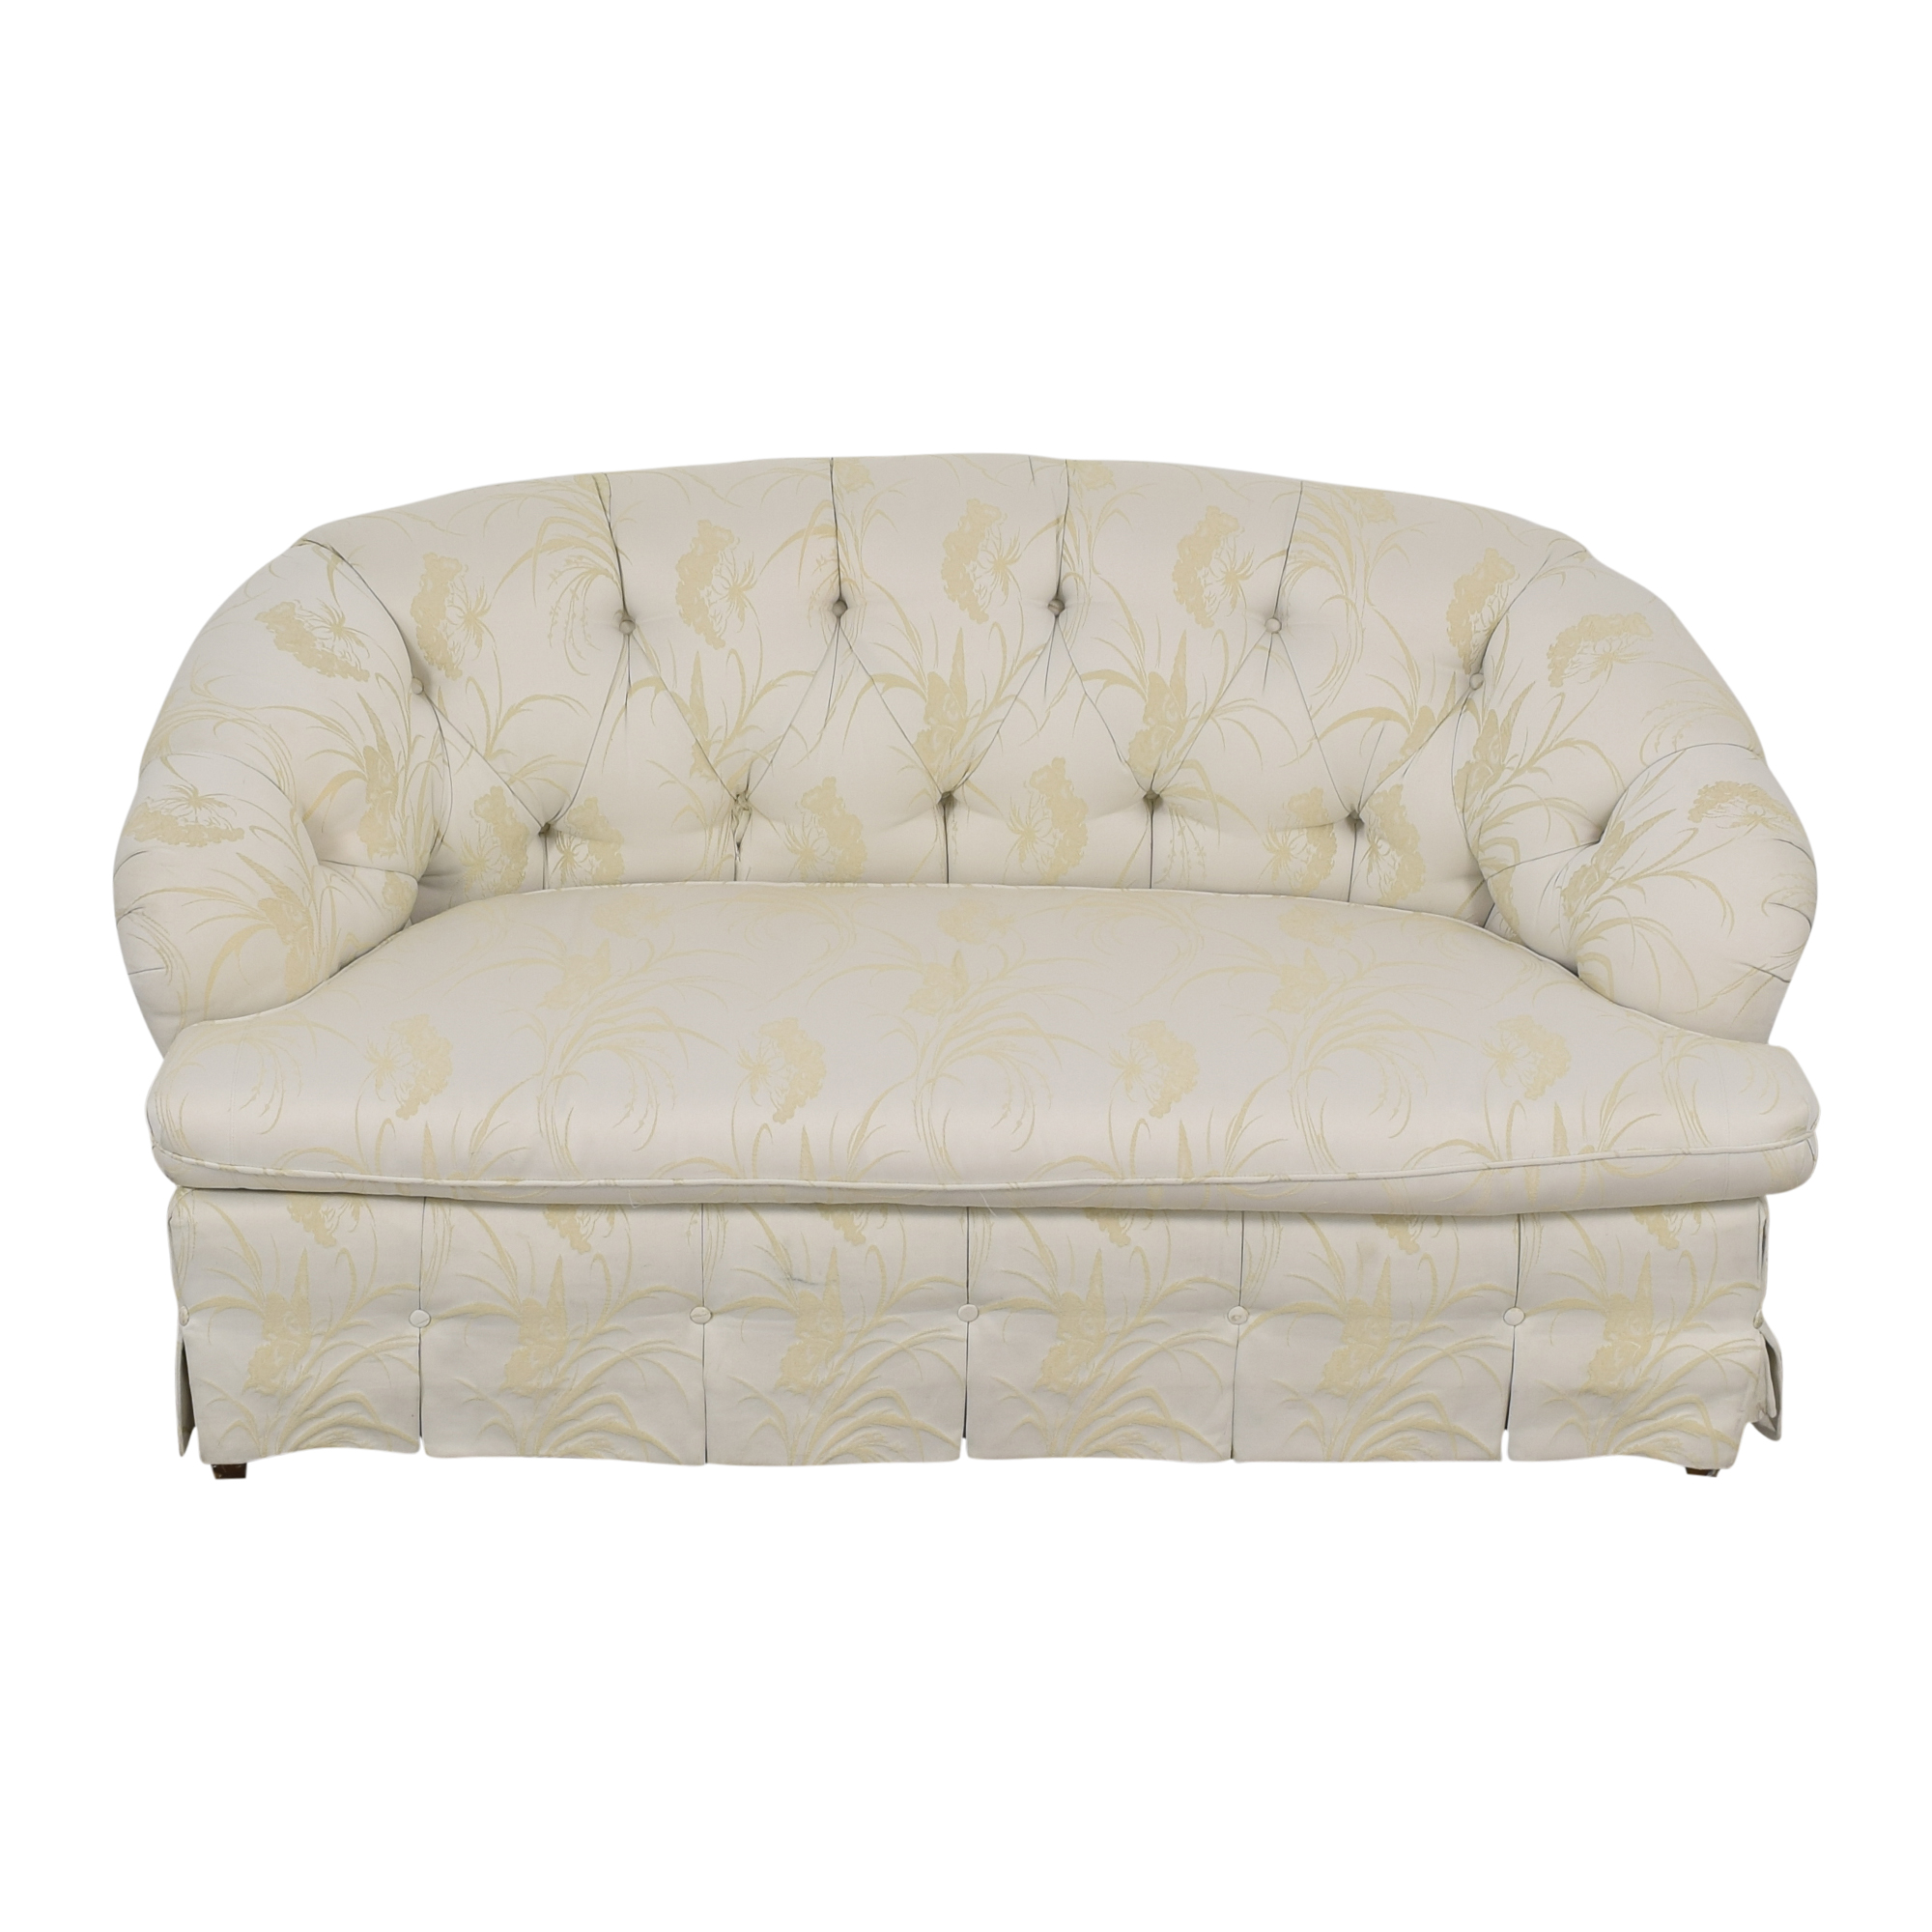 Key City Furniture Key City Furniture Tufted Loveseat ma